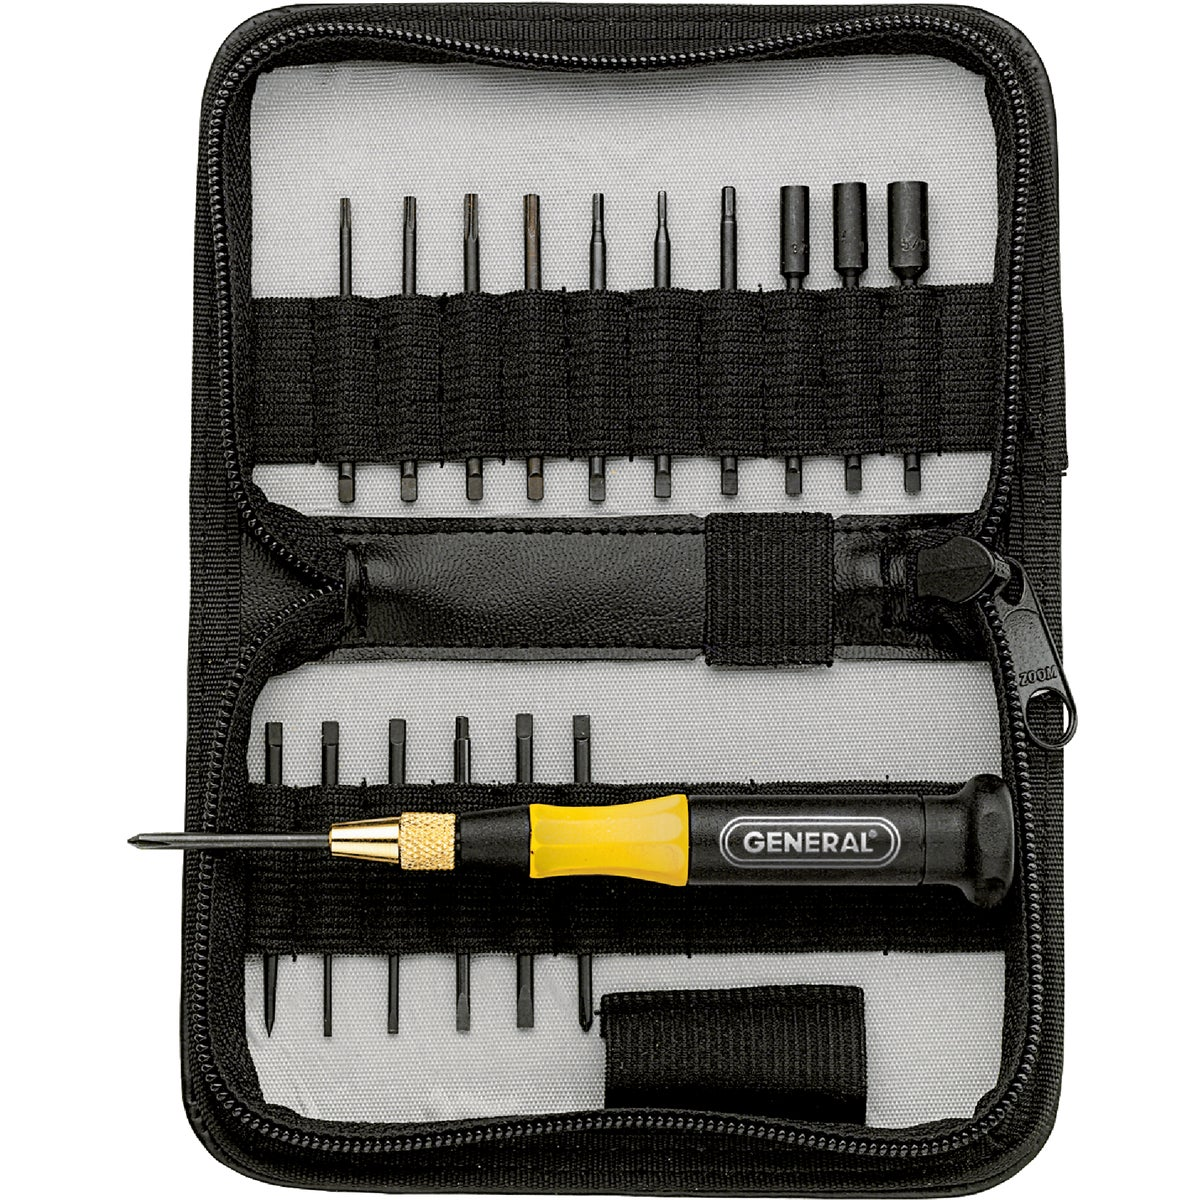 18PC SCREWDRIVER SET - 63518 by Gen Tools Mfg